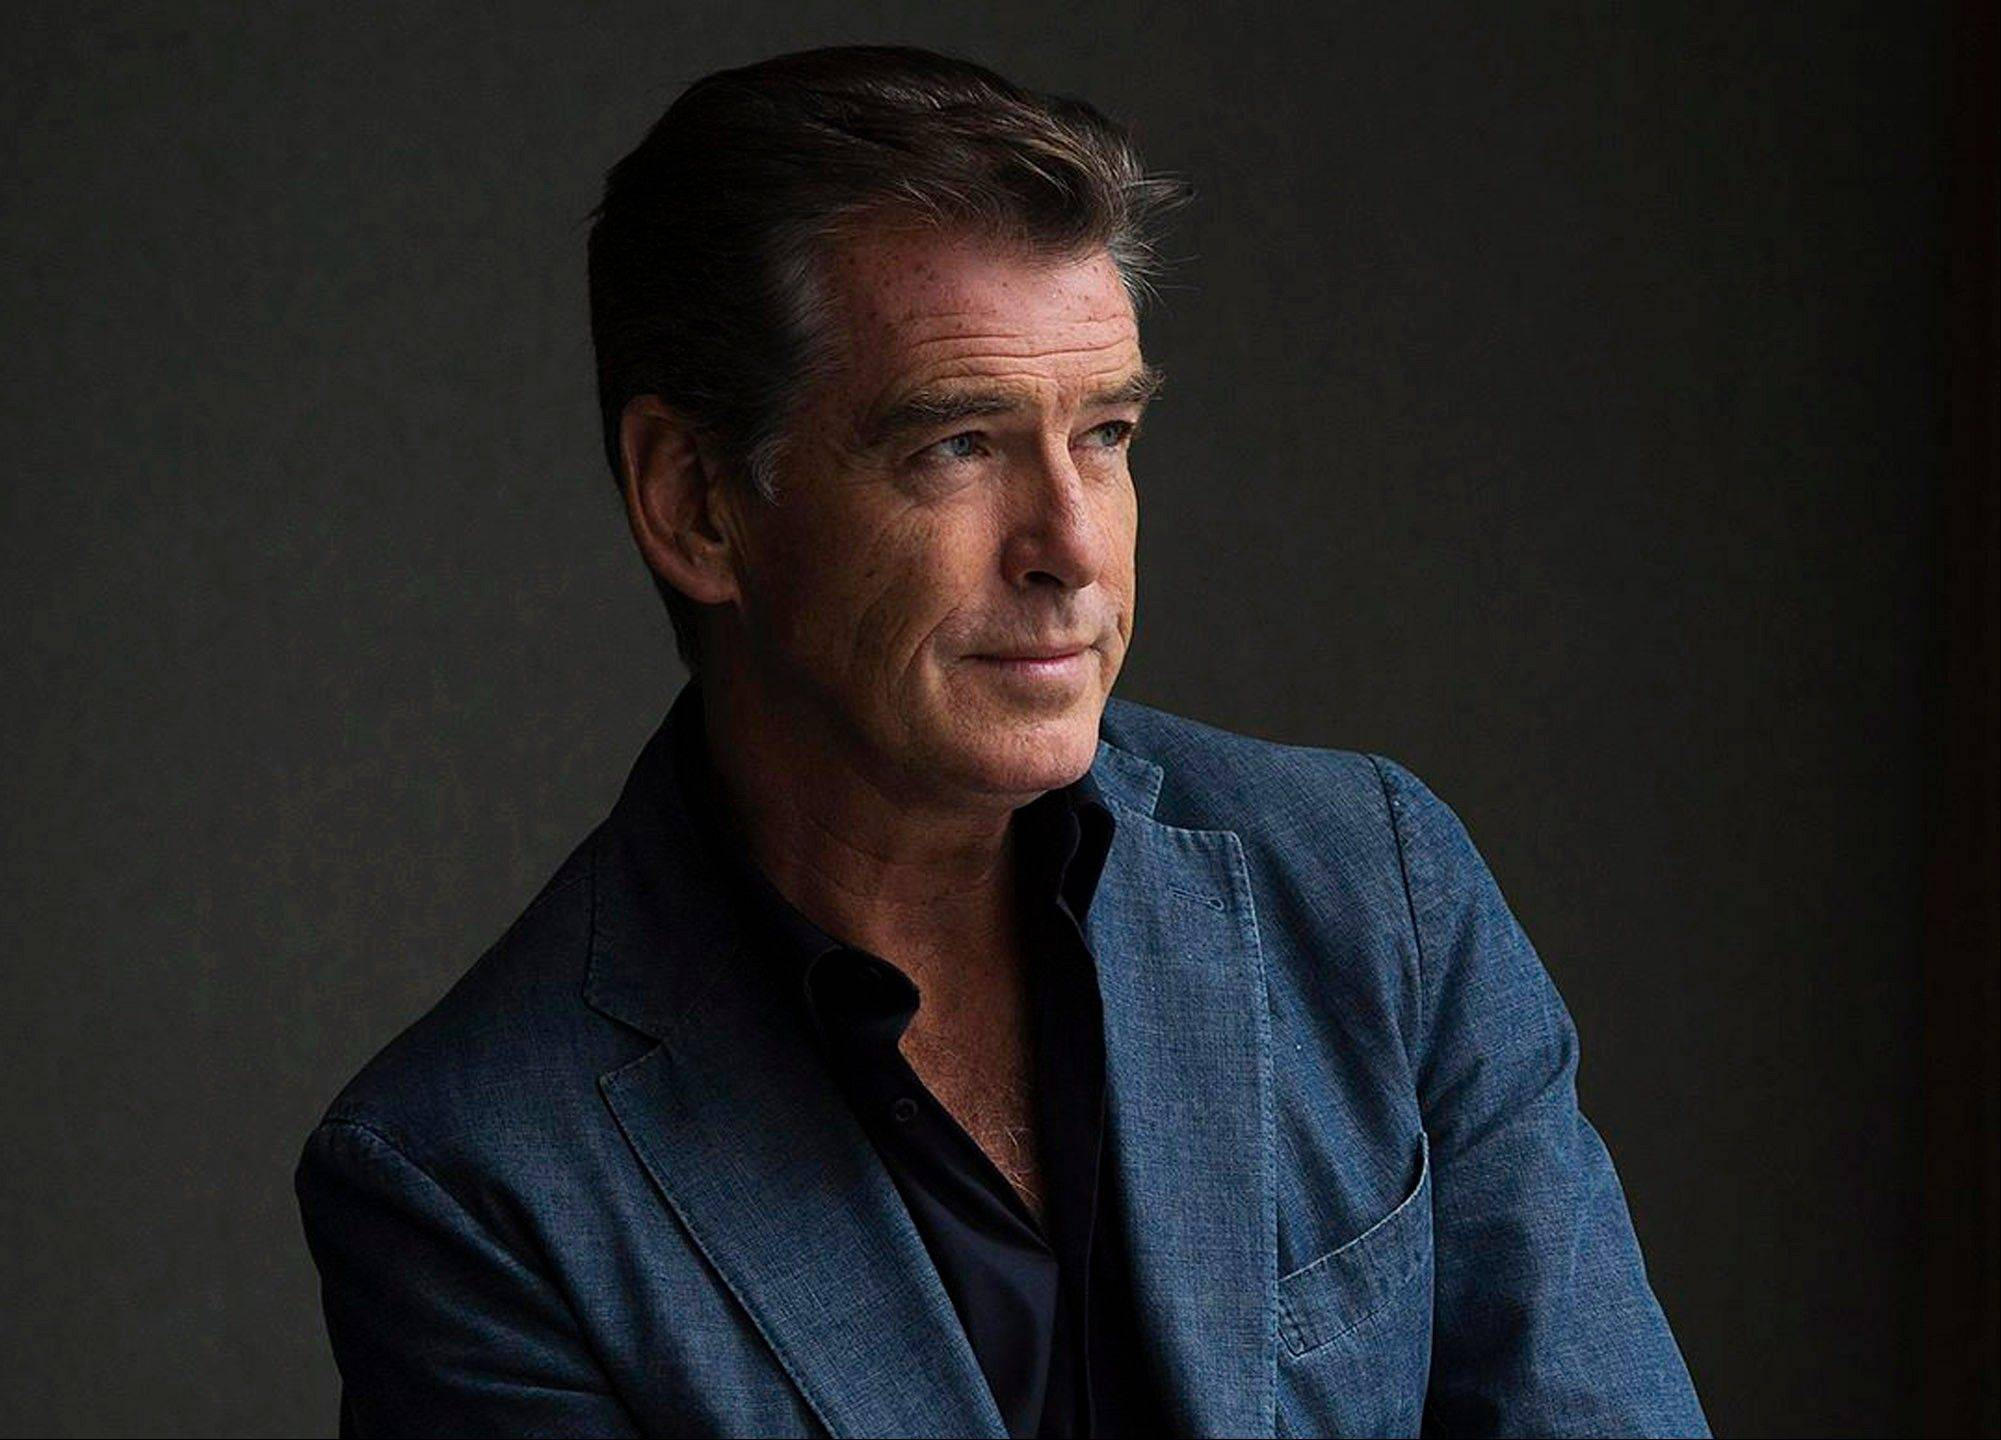 Pierce Brosnan�s daughter Charlotte died in London on June 28 after battling ovarian cancer, his publicist confirms.